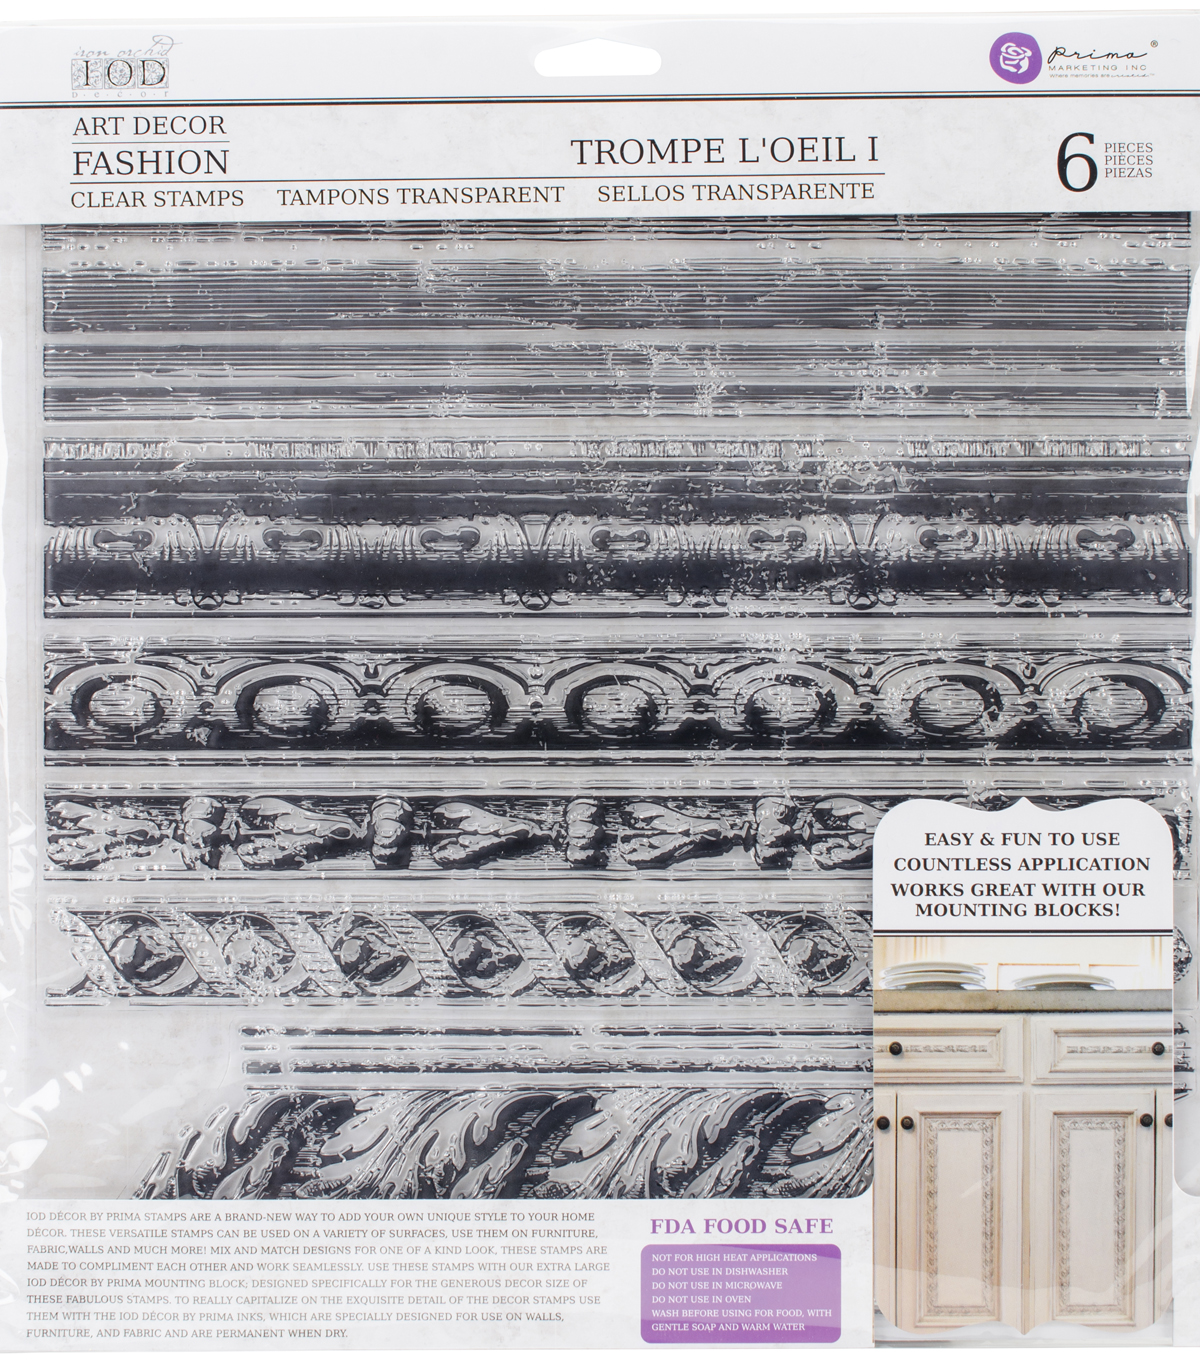 Iron Orchid Designs 6 pk Art Decor Fashion Clear Stamps-Trompe L\u0027oeil 1